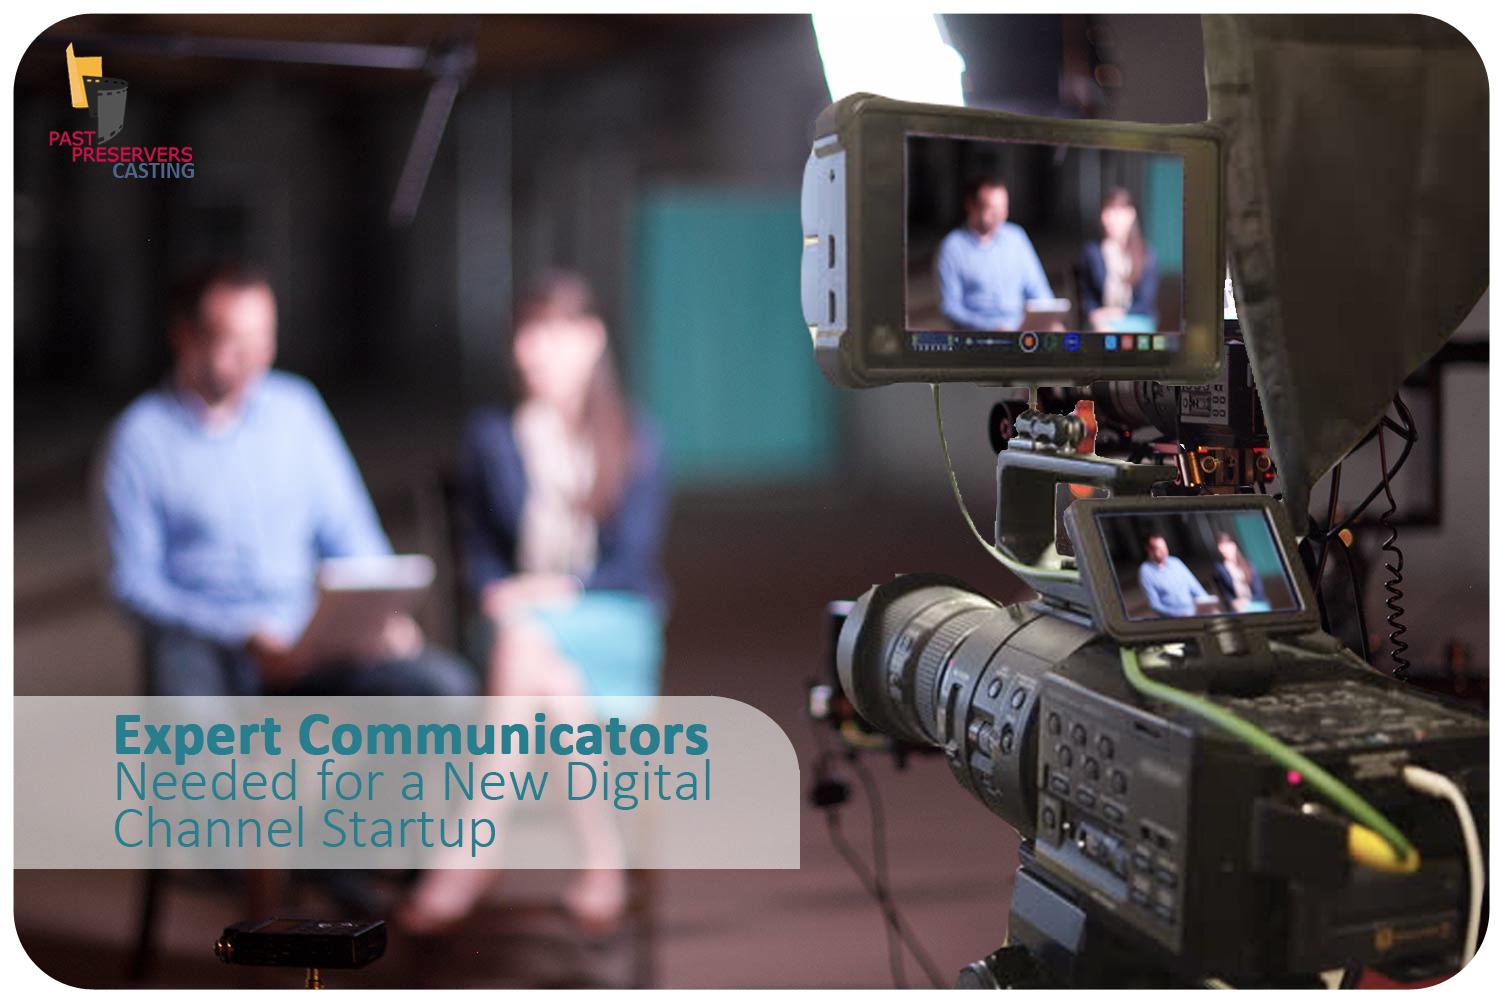 Expert Communicators Needed!